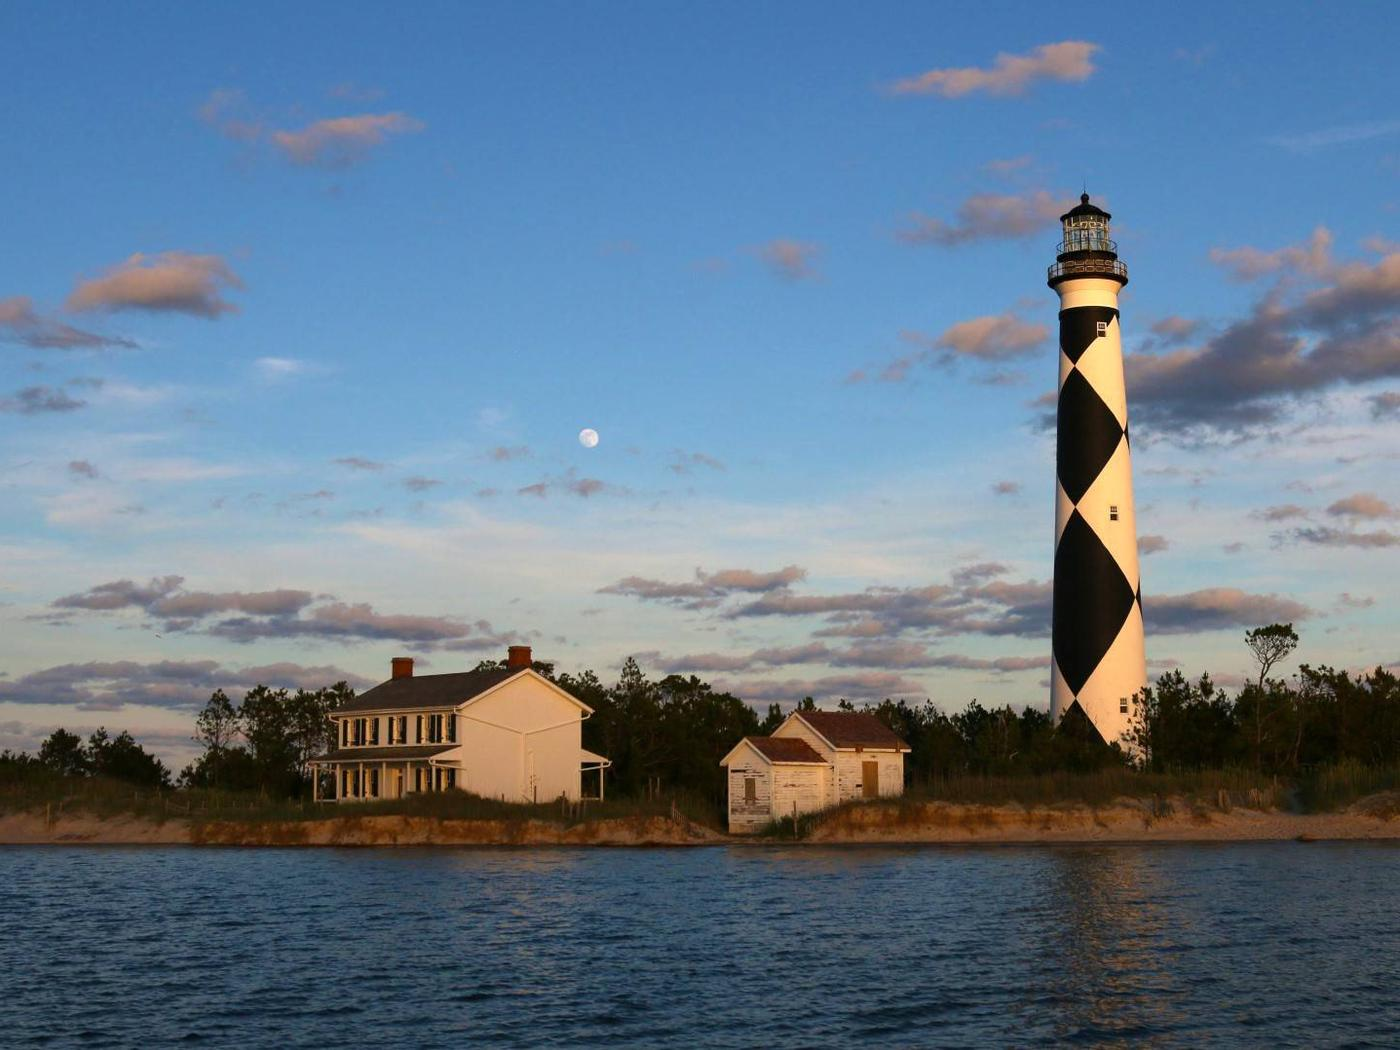 Cape Lookout Lighthouse area as the moon rises in the background at dusk.Cape Lookout's Lighthouse, Keepers Quarters Museum, and the Summer Kitchen is the setting of this magical evening tour.